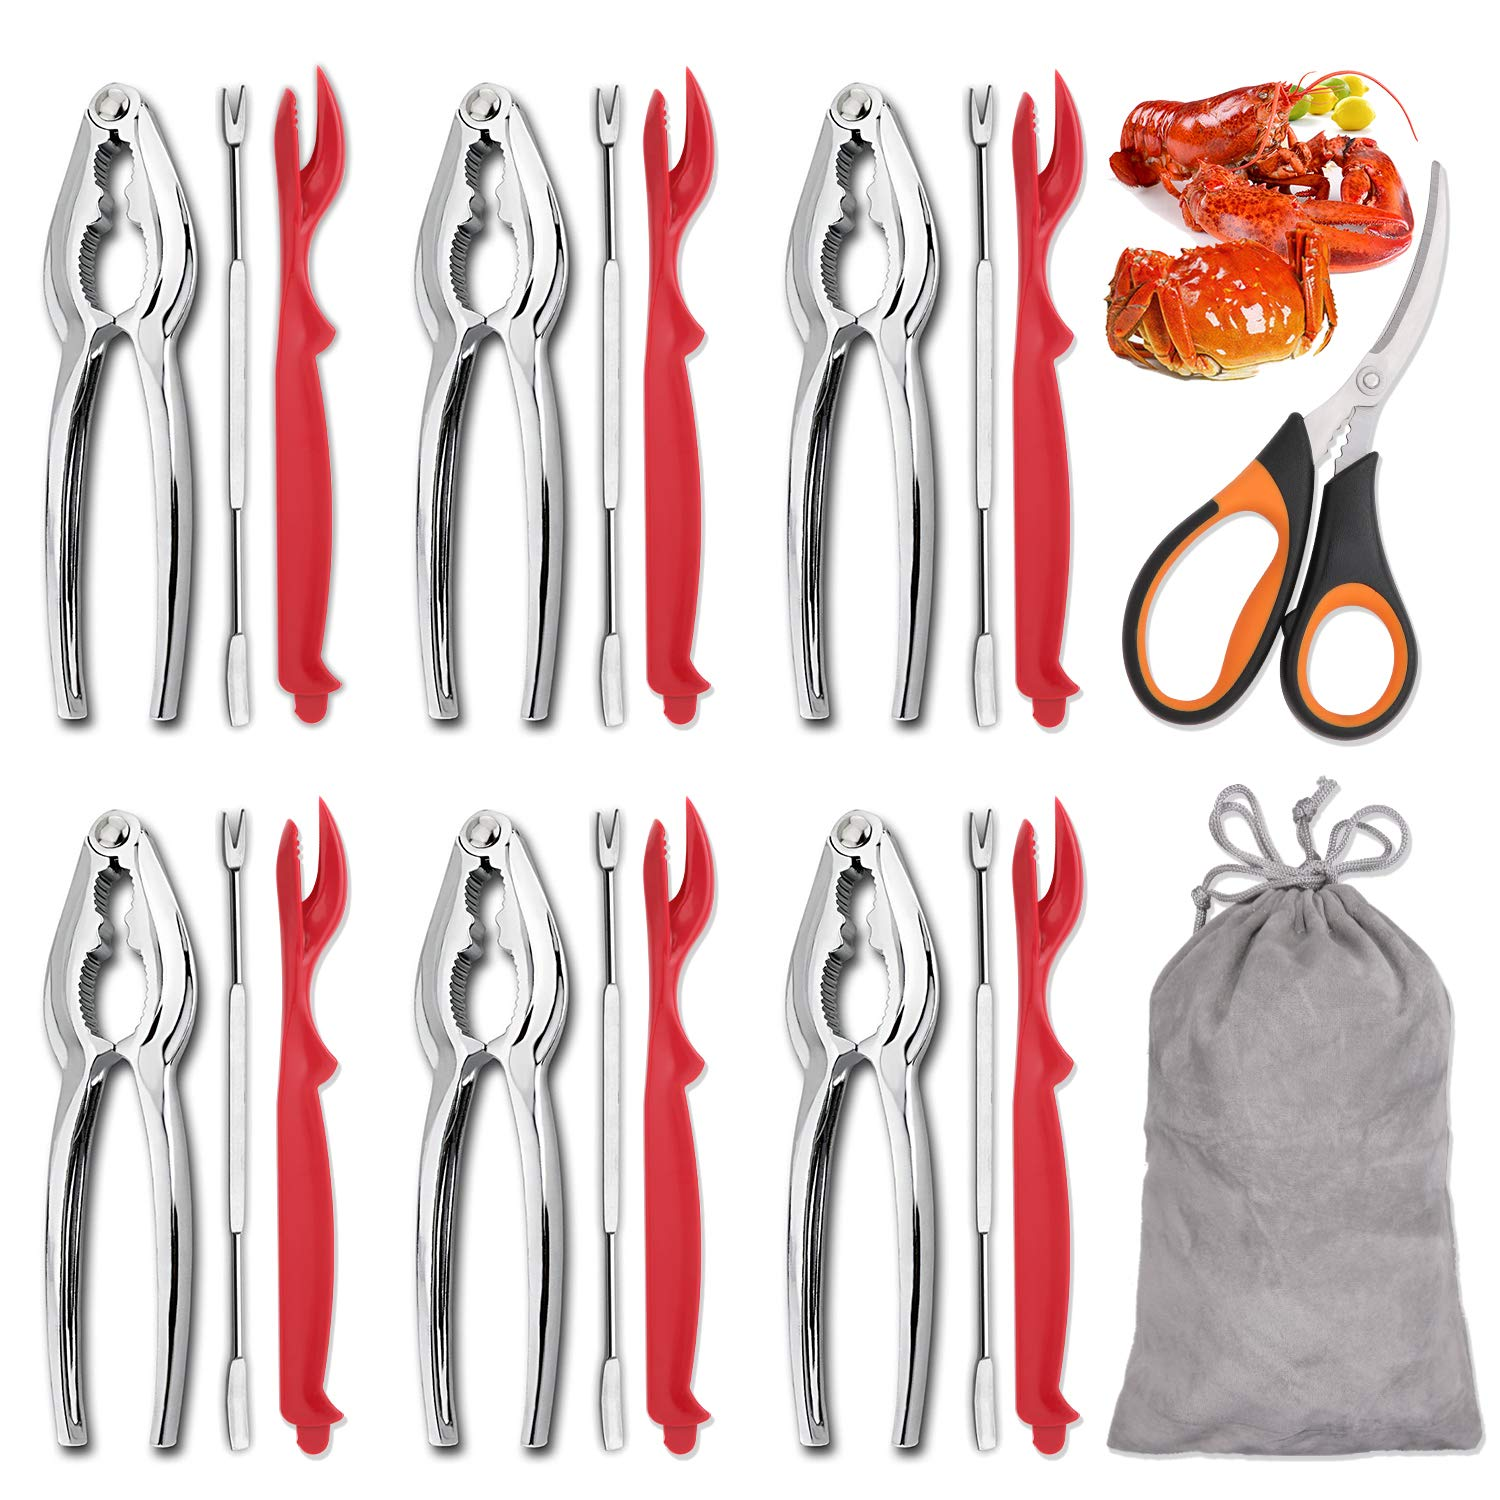 Hiware 19-piece Seafood Tools Set includes 6 Crab Crackers, 6 Lobster Shellers, 6 Crab Leg Forks/Picks and 1 Seafood Scissors & Storage Bag - Nut Cracker Set by Hiware